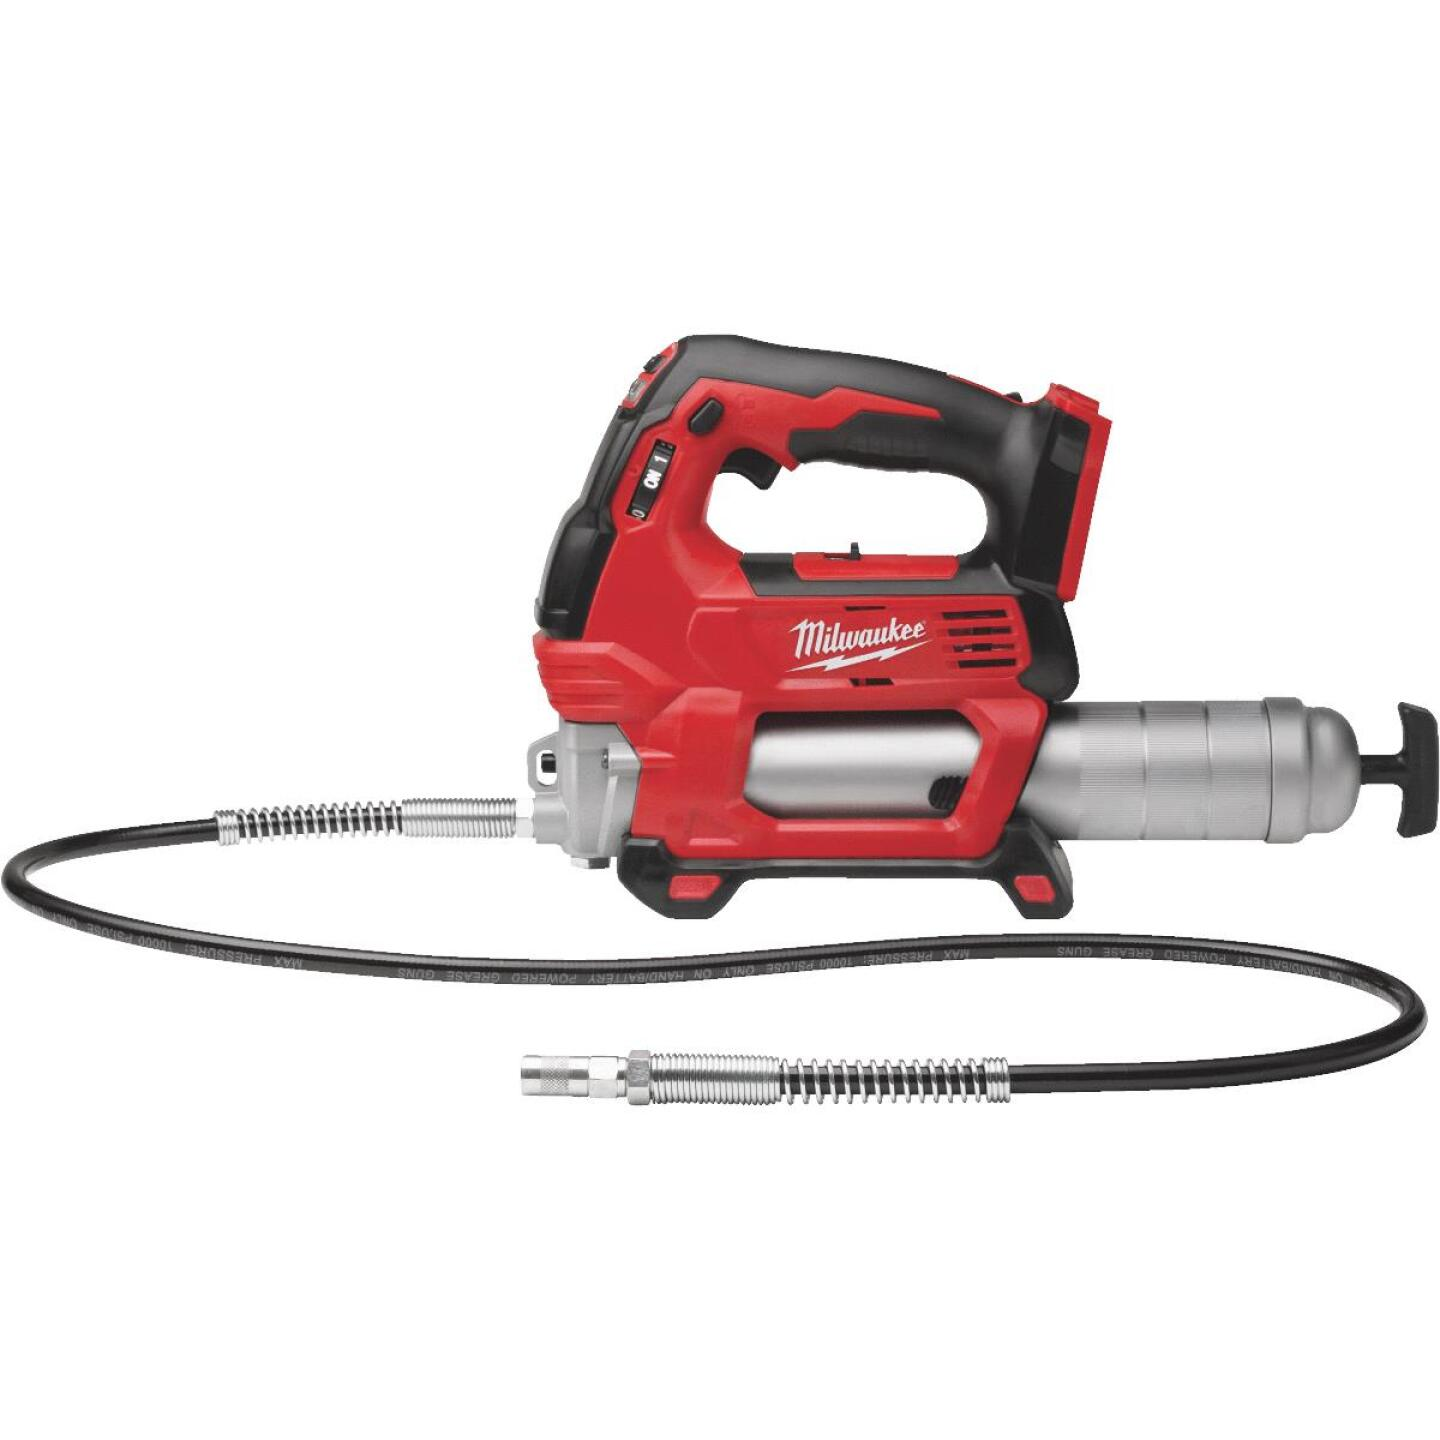 Milwaukee M18 18 Volt Lithium-Ion 2-Speed Cordless Grease Gun (Bare Tool) Image 1